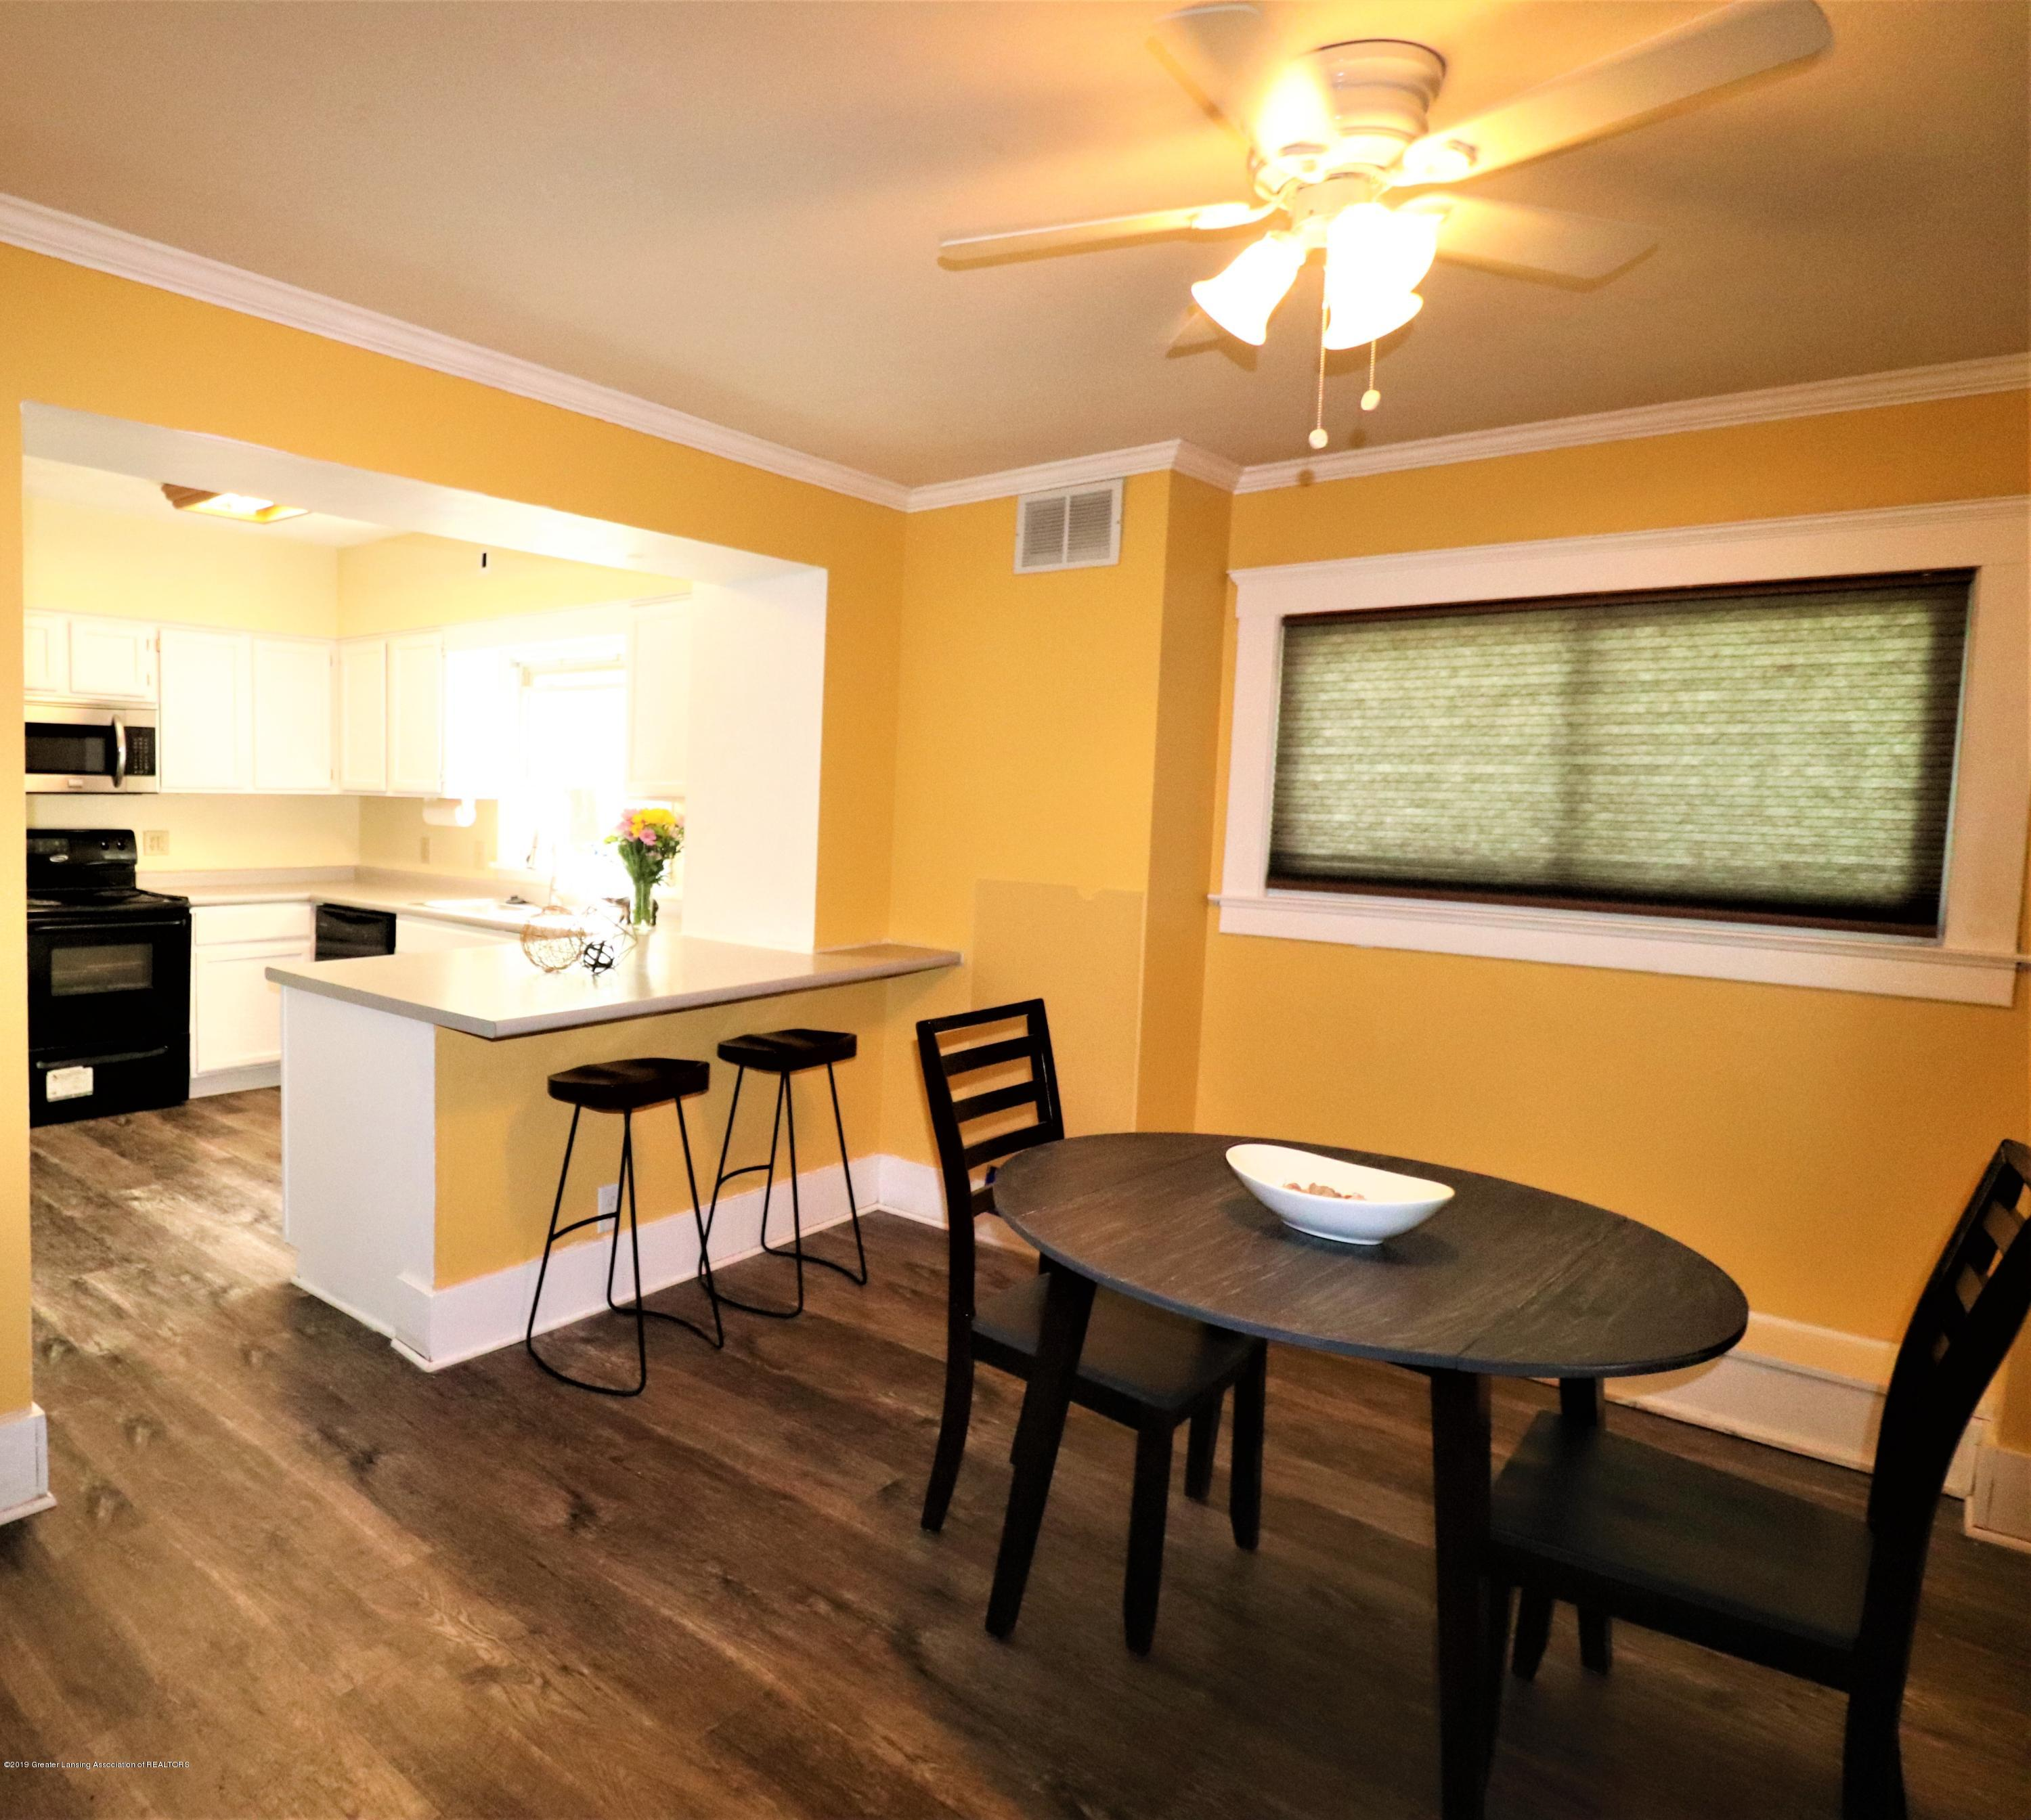 515 W Morrell St - 11 KItchen  dining - 11